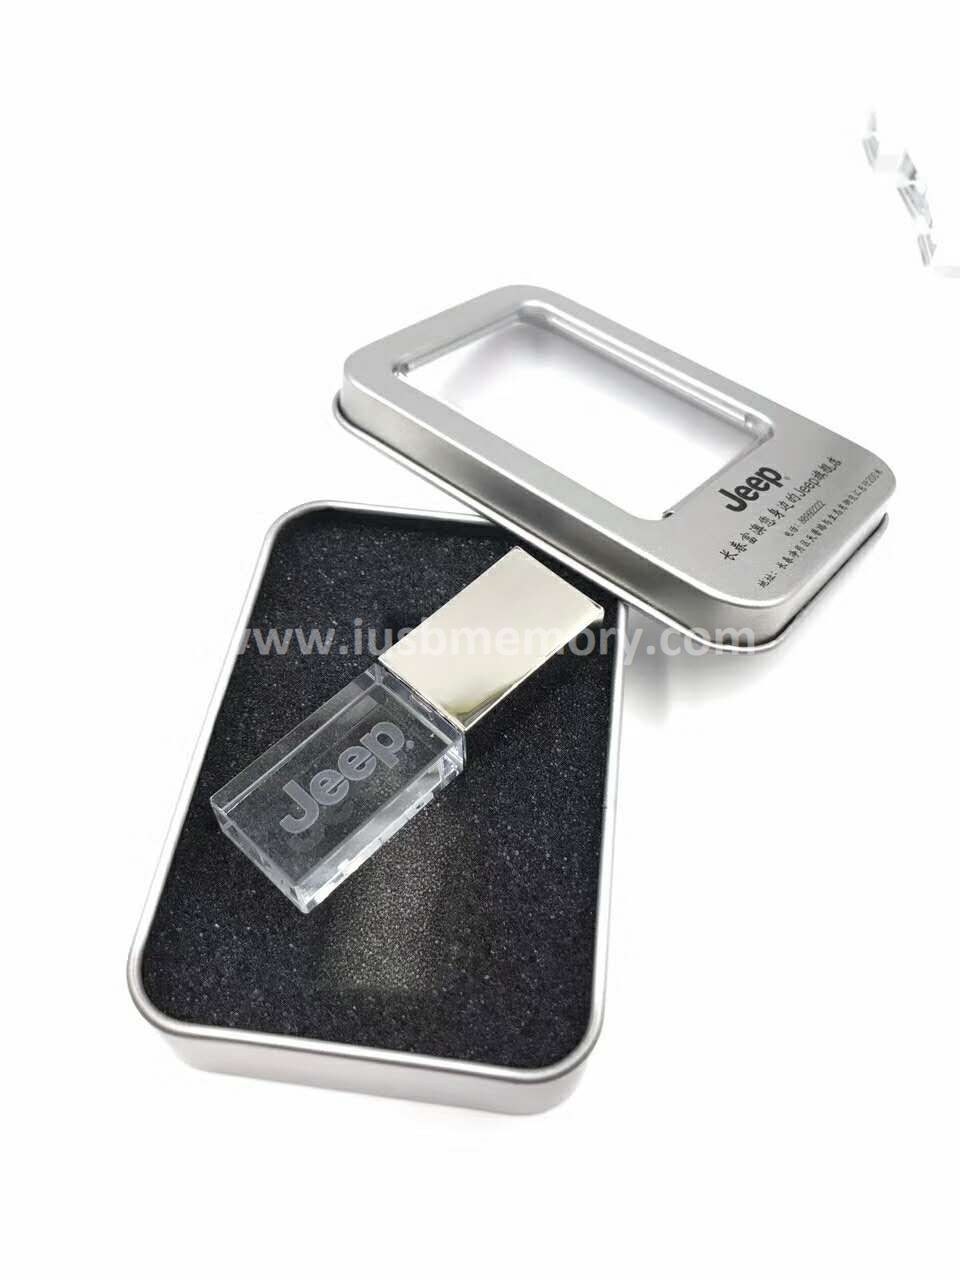 SR-008 crystal usb memory with LED light